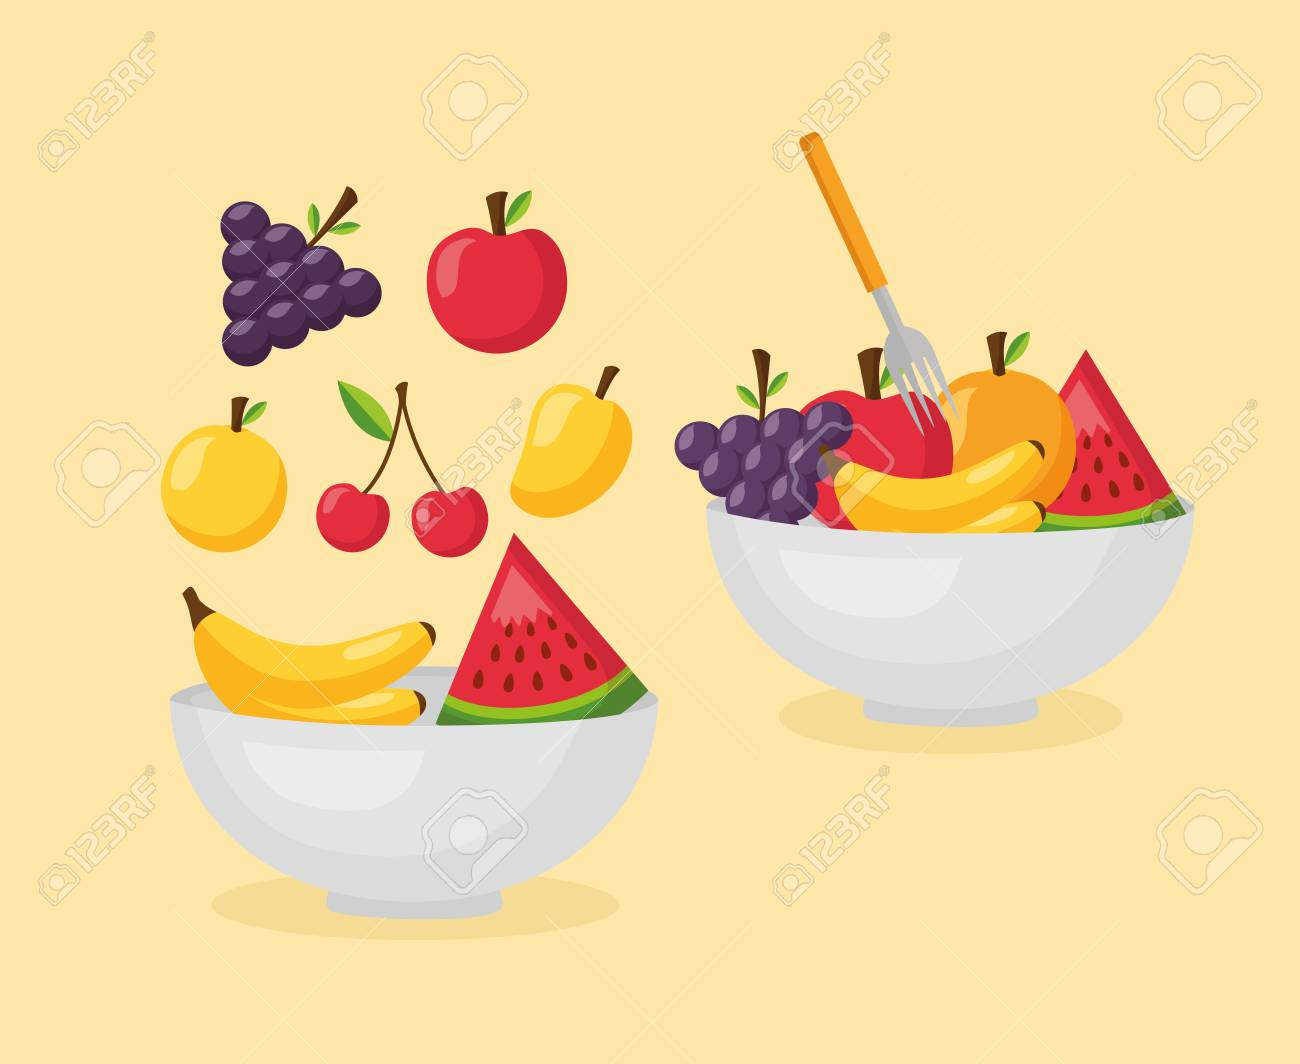 healthy food fresh bowls with fruits vector illustration - 126819934